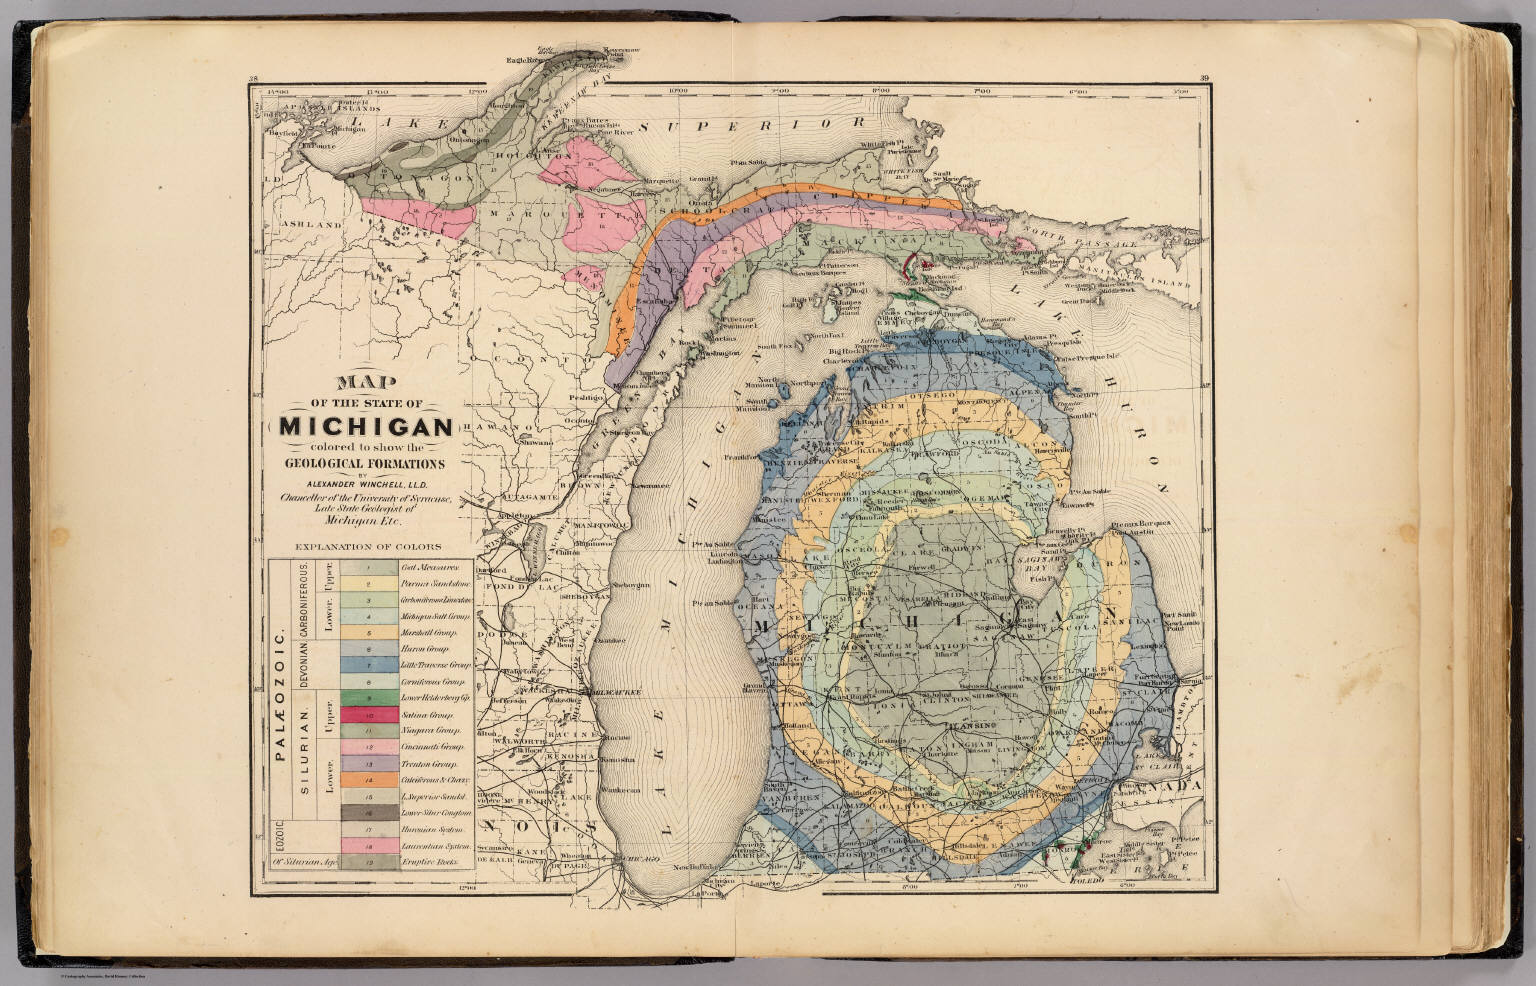 Map Of The State Of Michigan Colored To Show The Geological